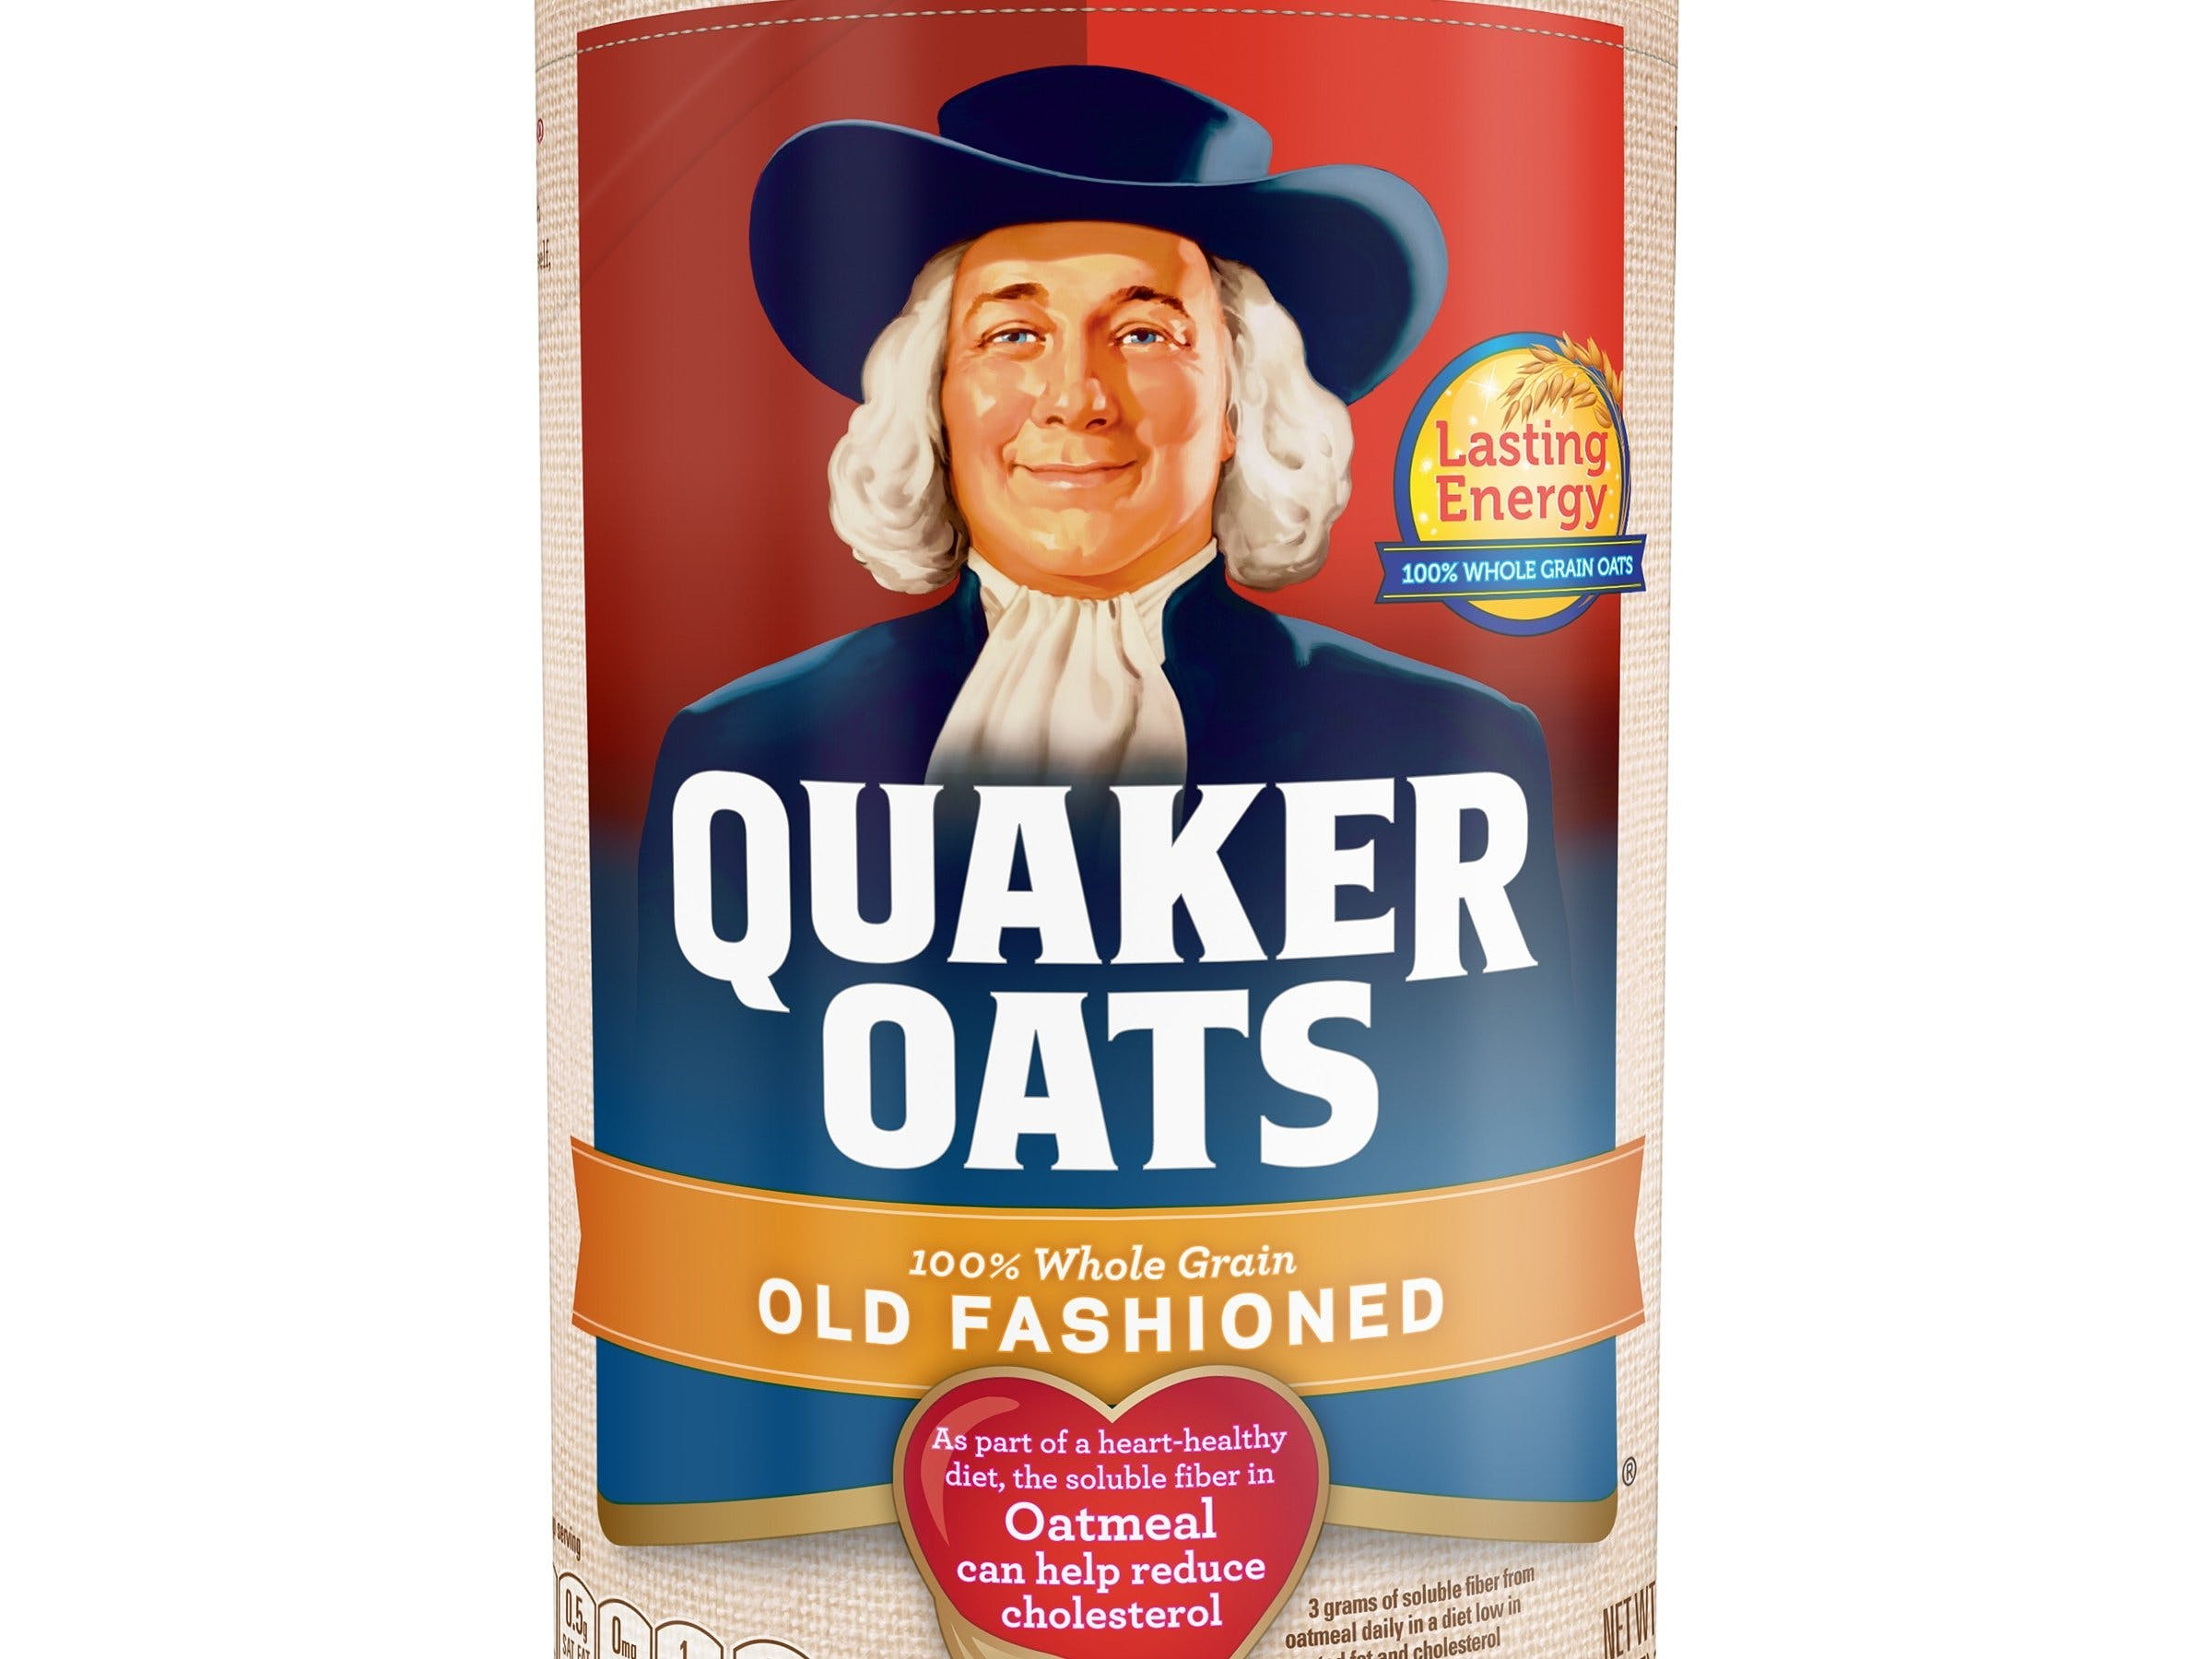 Substituting old fashioned oats for quick